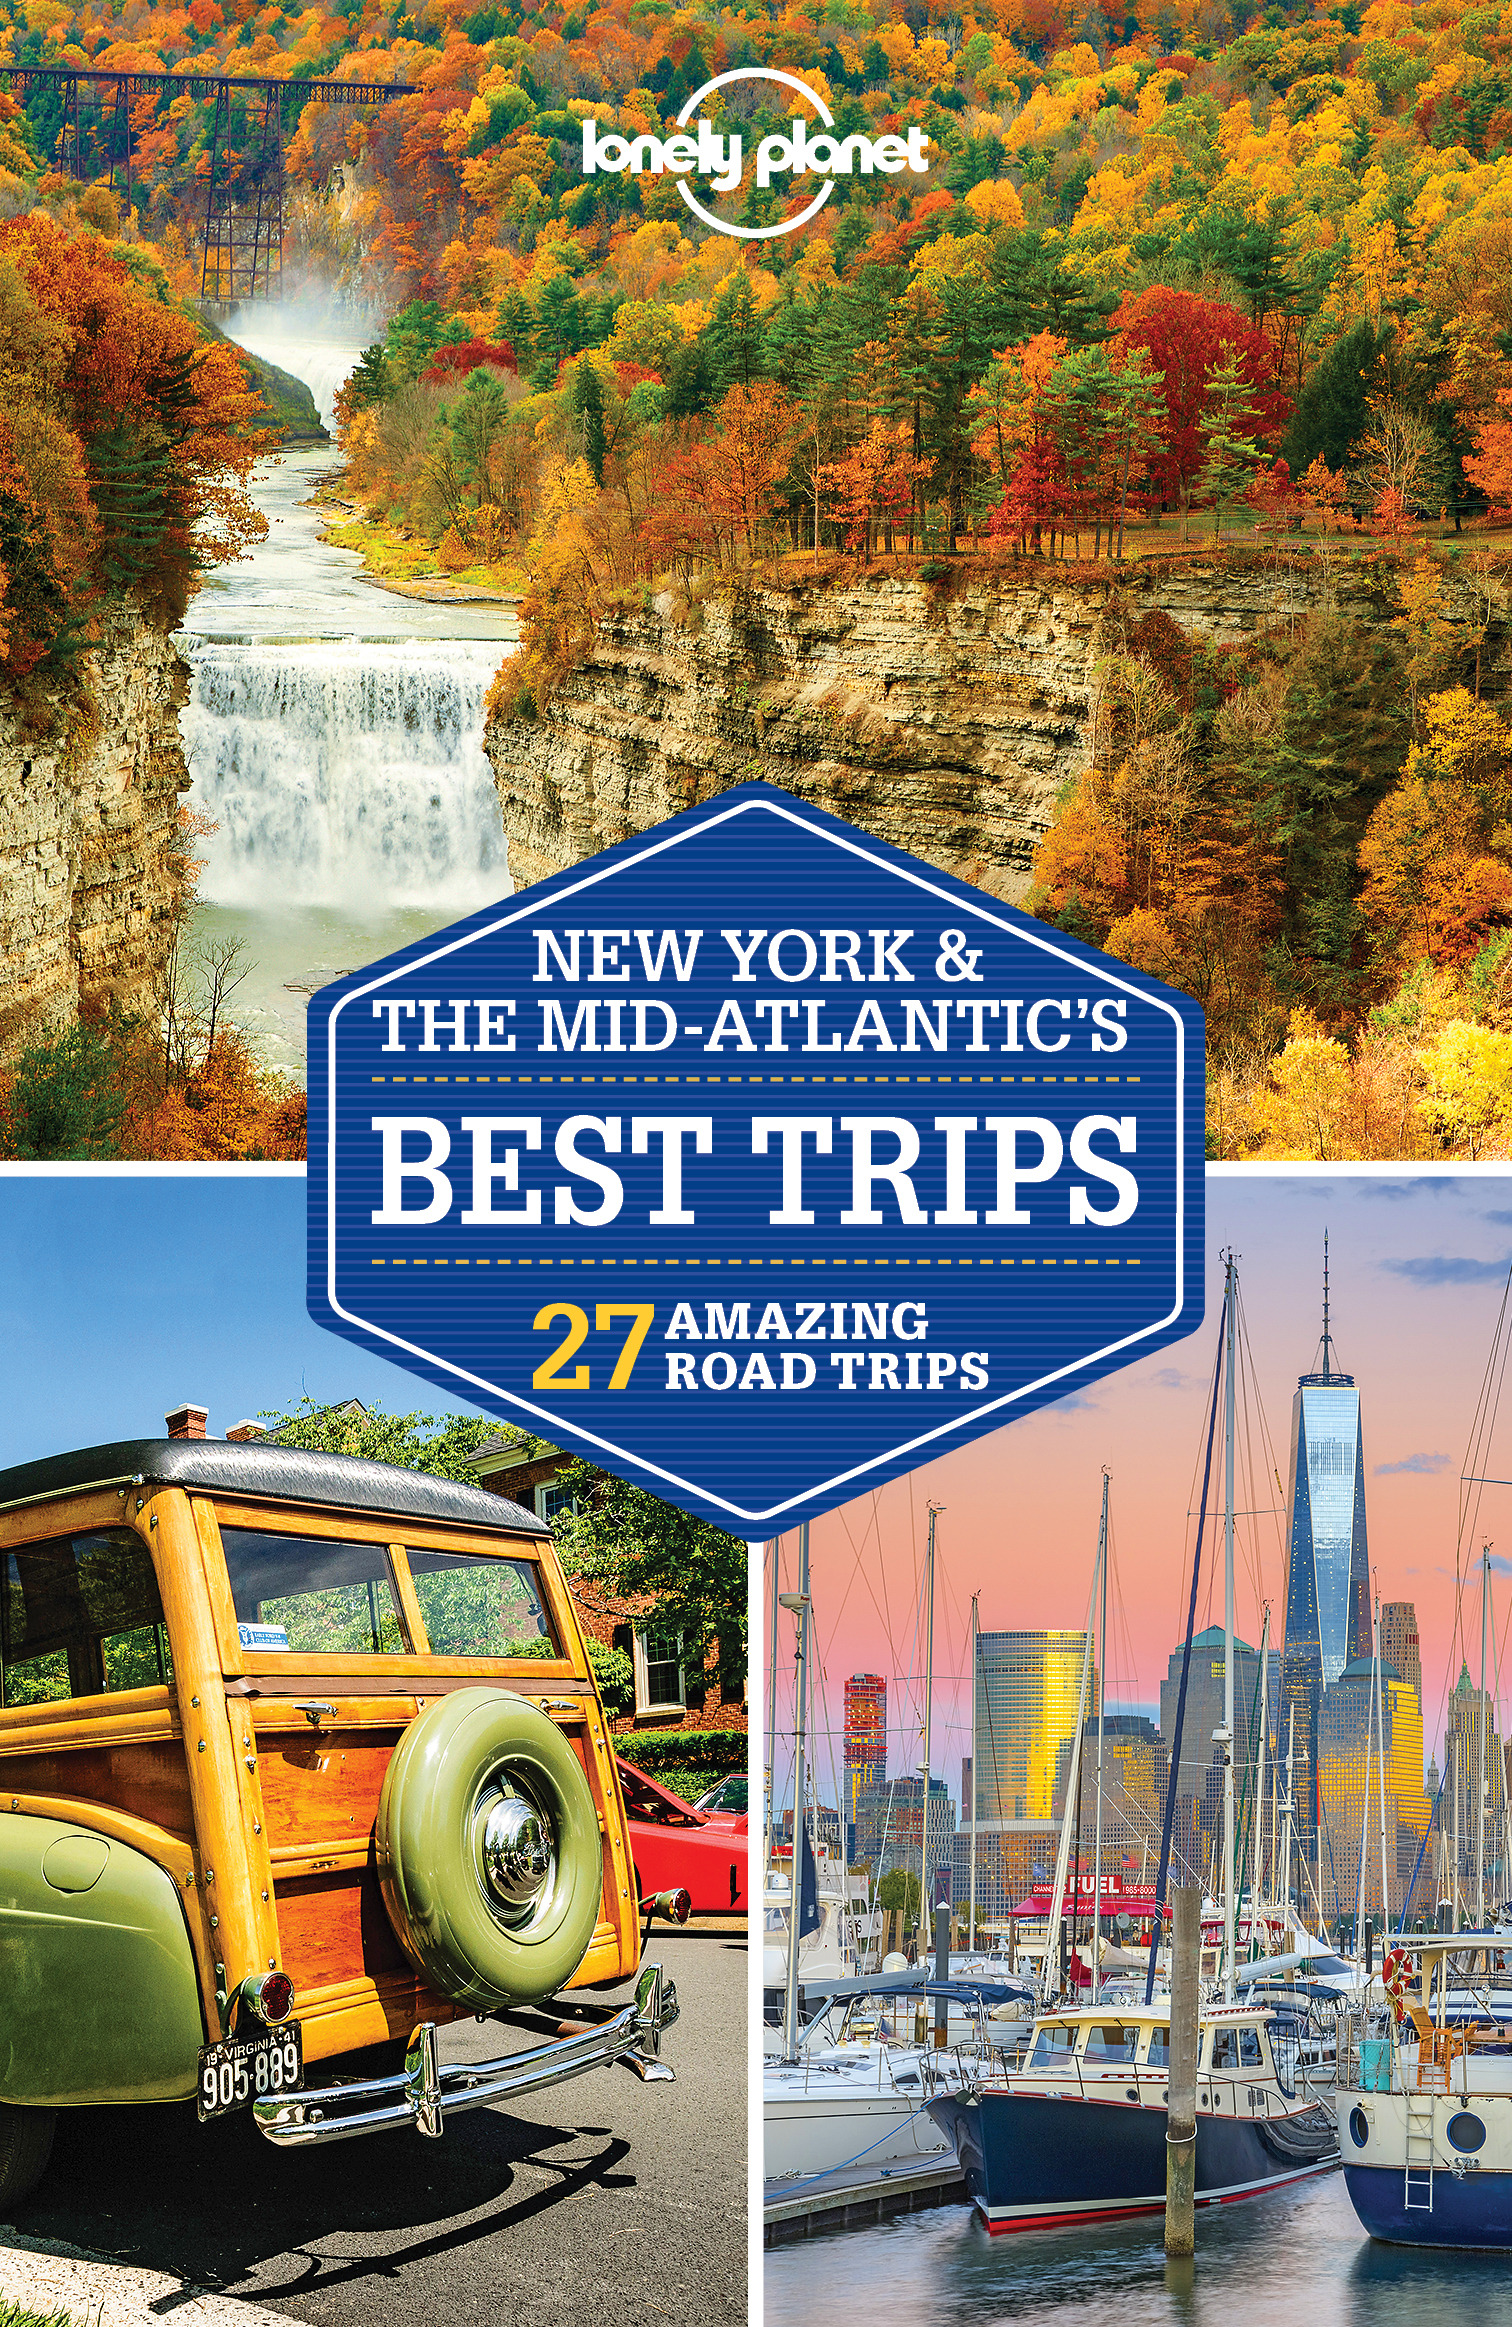 Lonely planet new york the mid atlantics best trips e kirja balfour amy c lonely planet new york the mid atlantics best trips fandeluxe Gallery